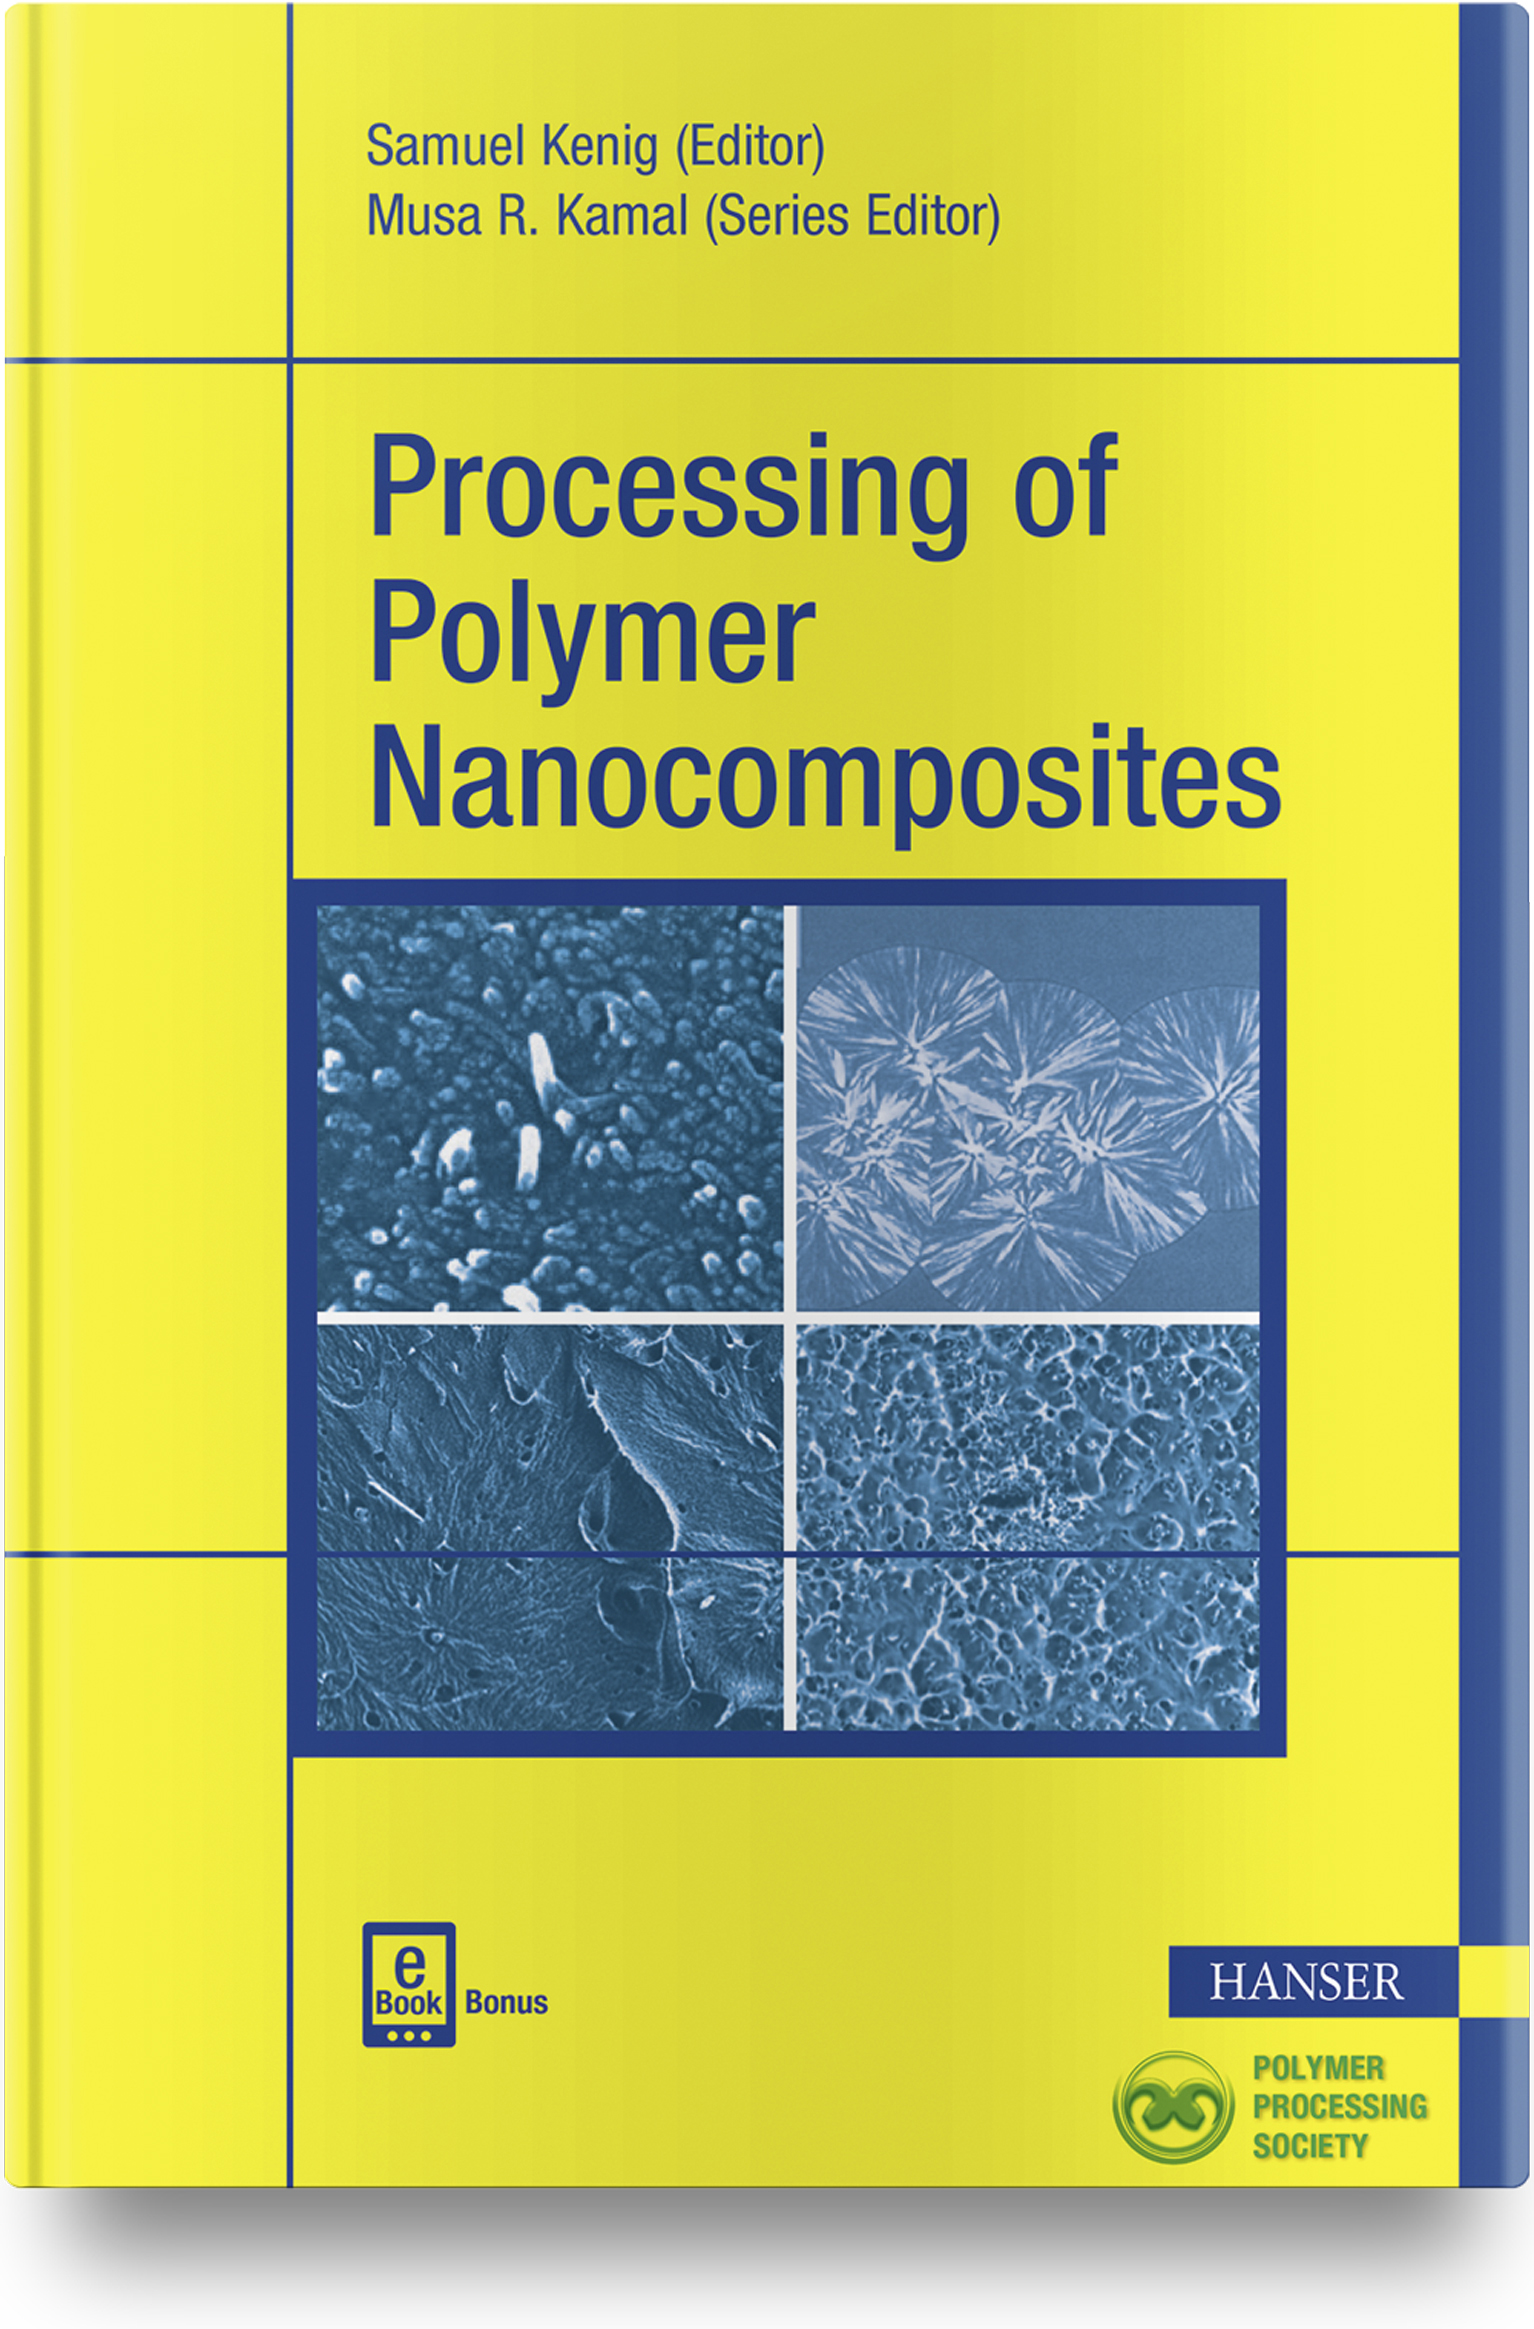 Kenig, Processing of Polymer Nanocomposites, 978-1-56990-635-4